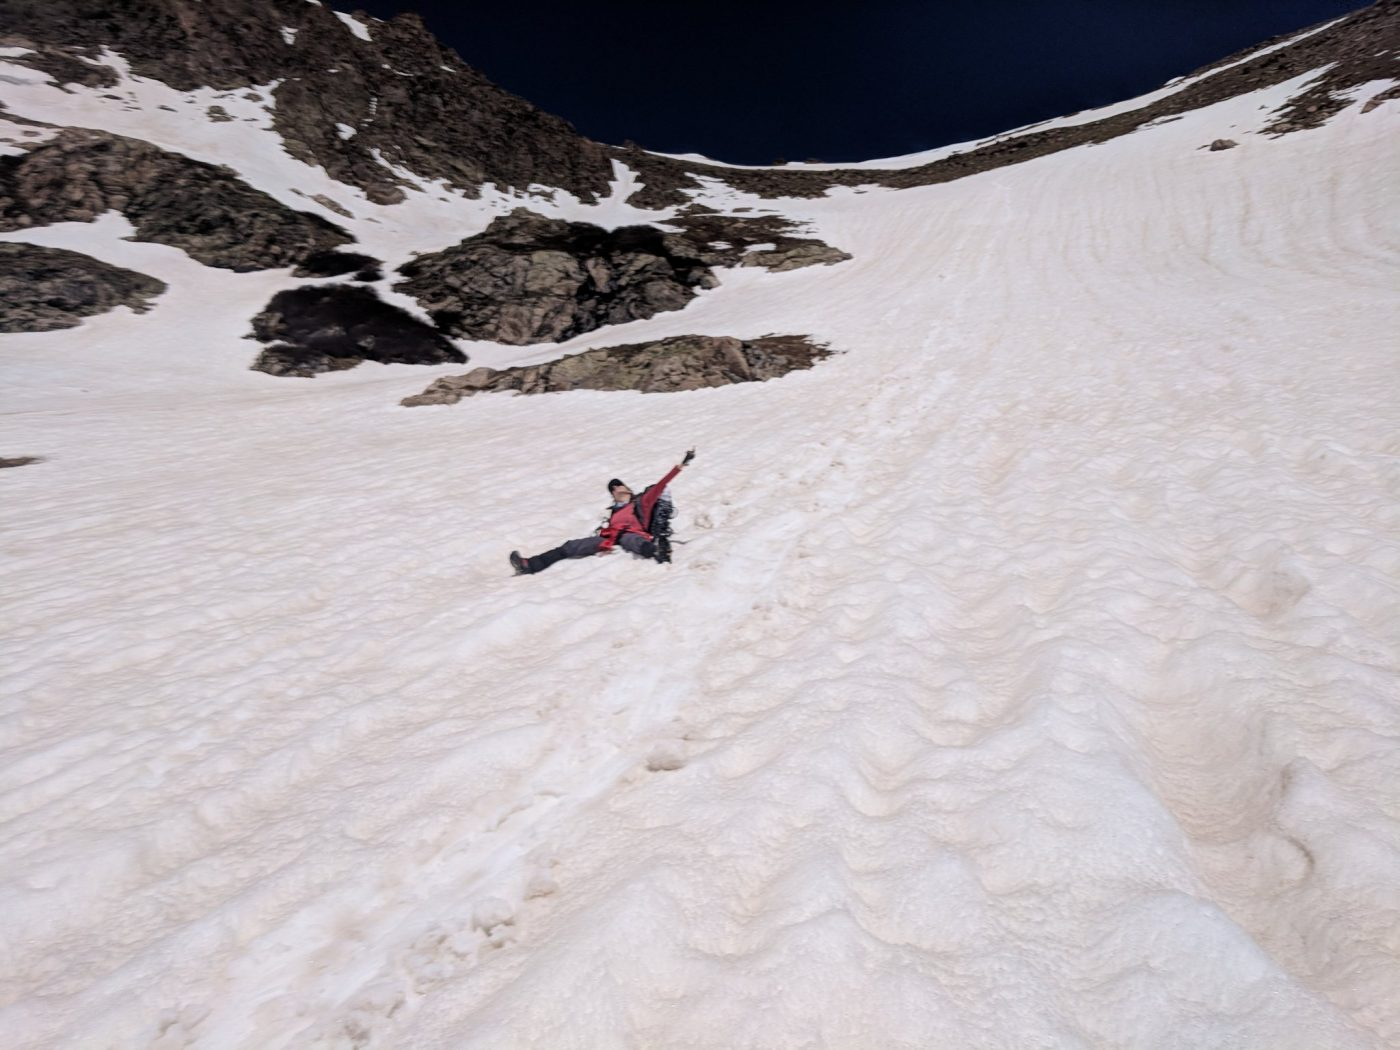 Citadel to Pettingell traverse trip report